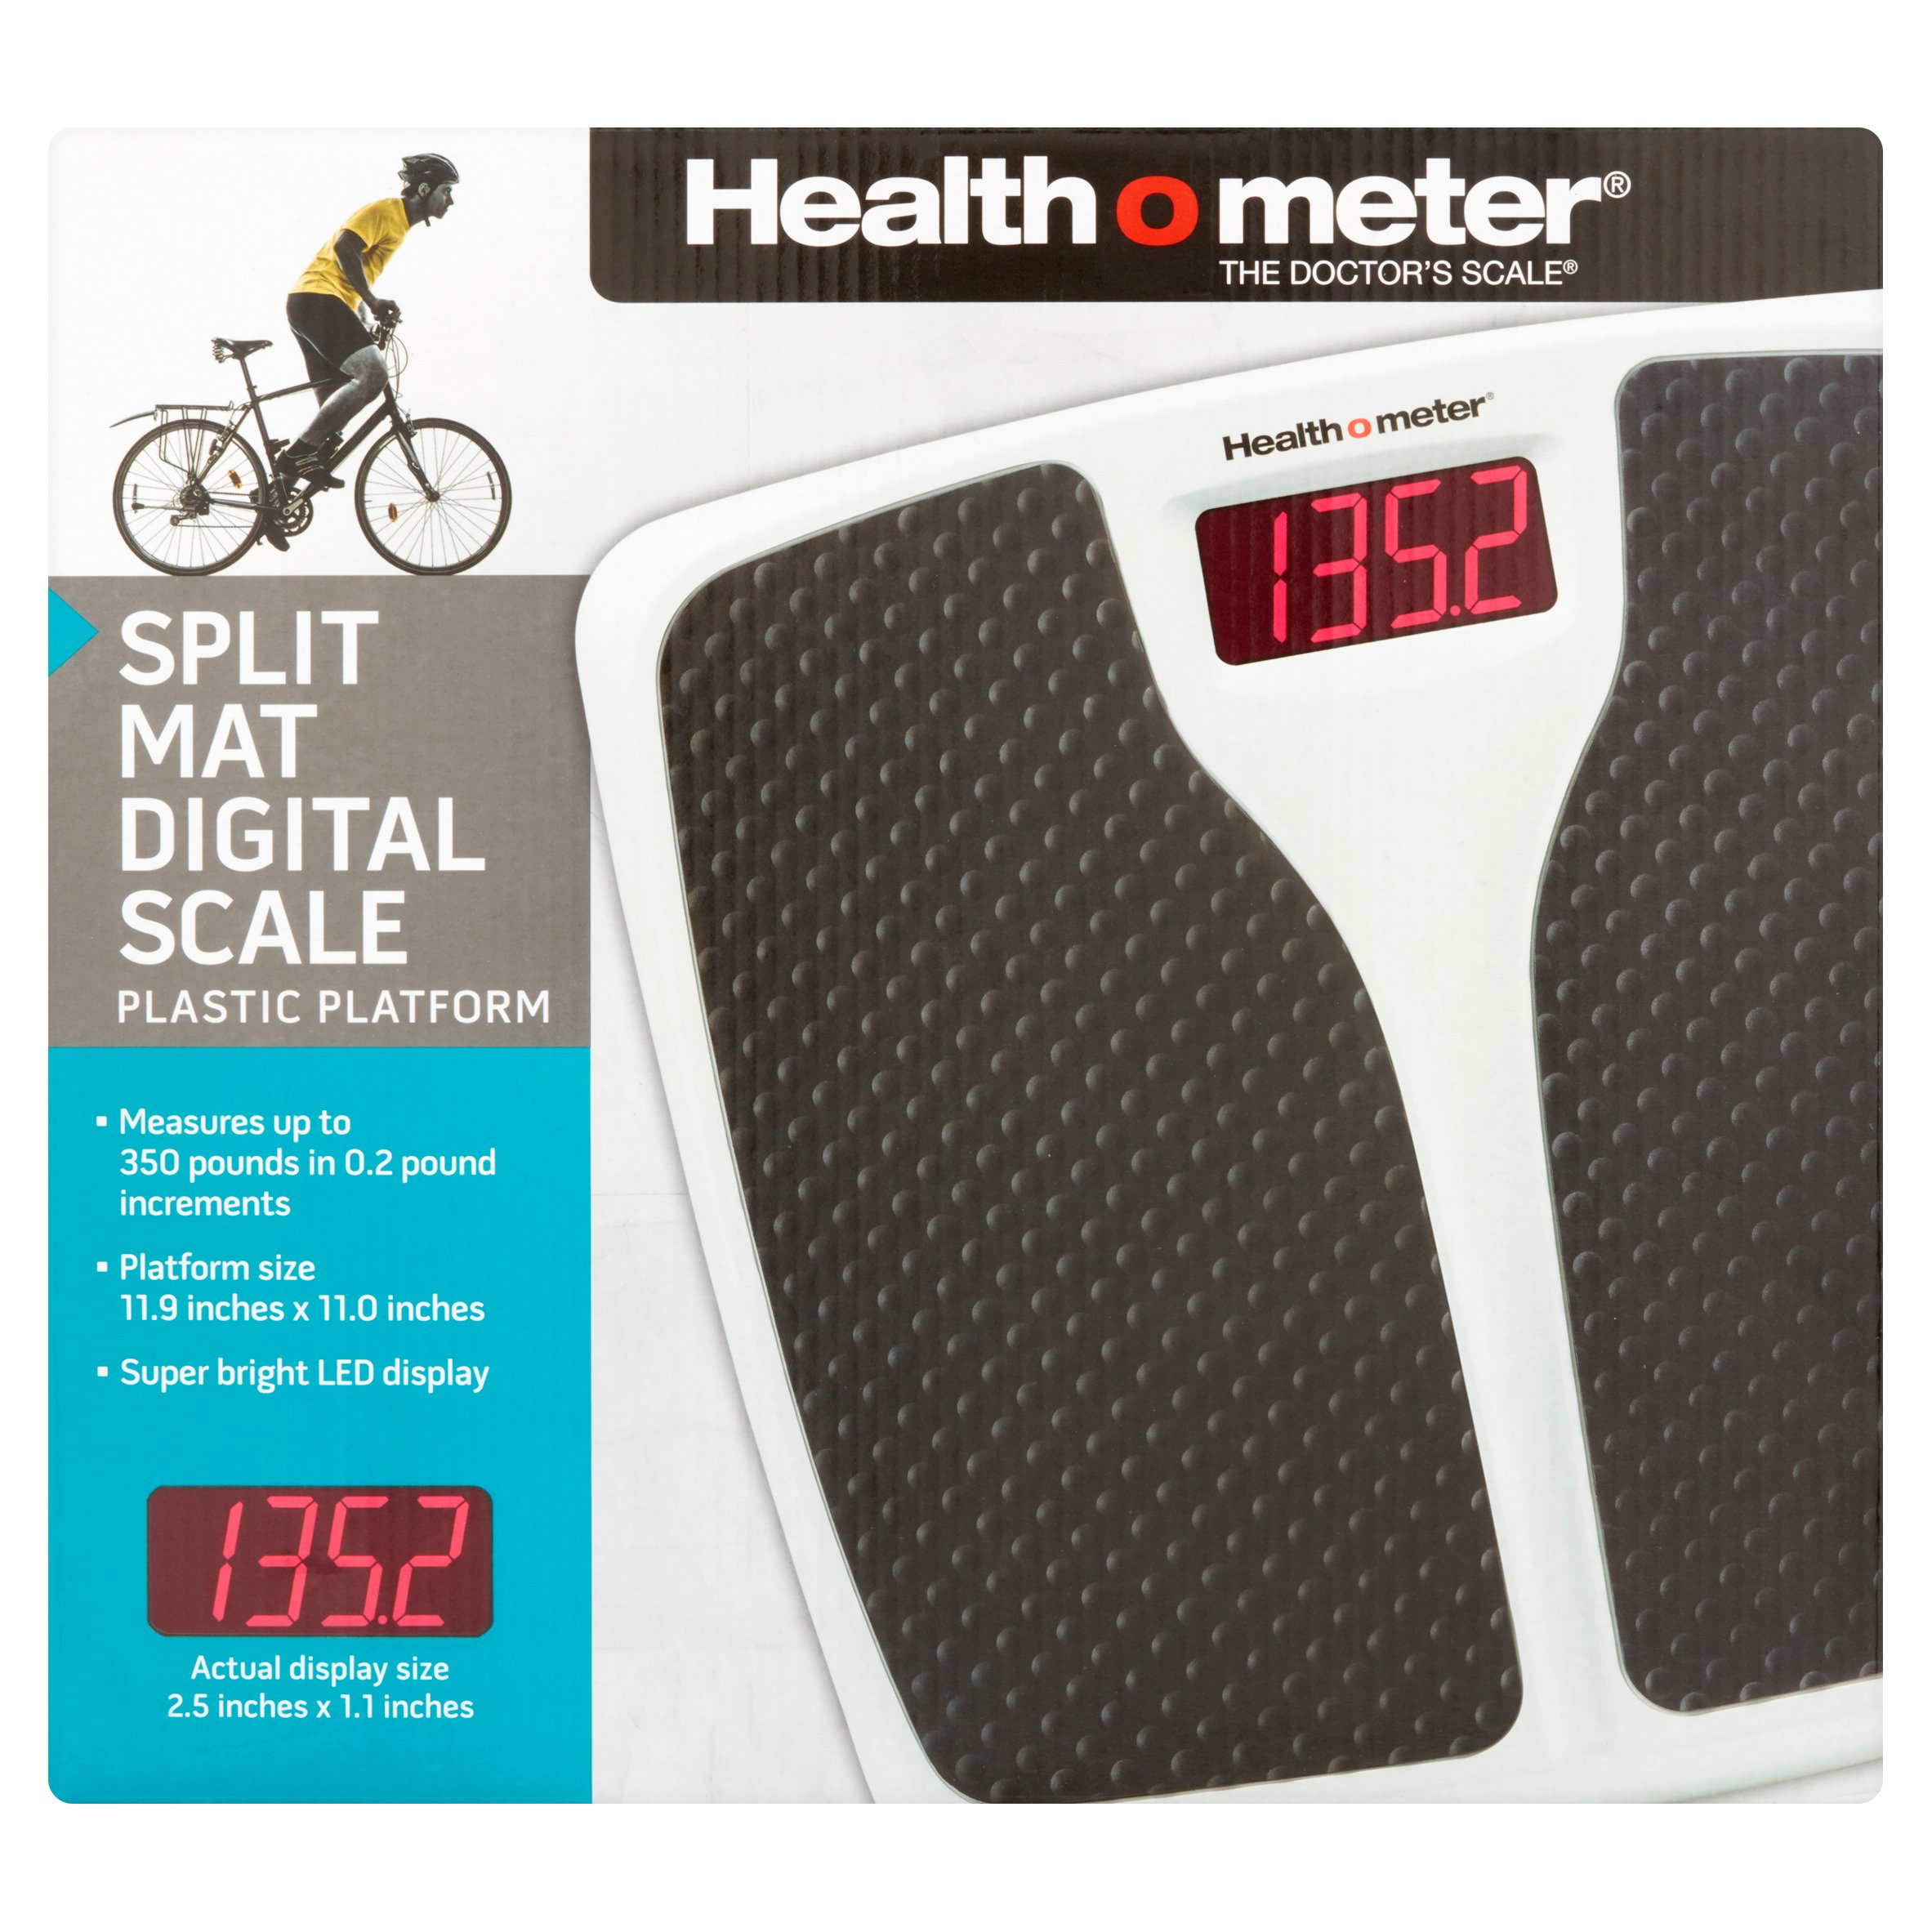 Health o meter The Doctor's Scale Split Mat Digital Scale